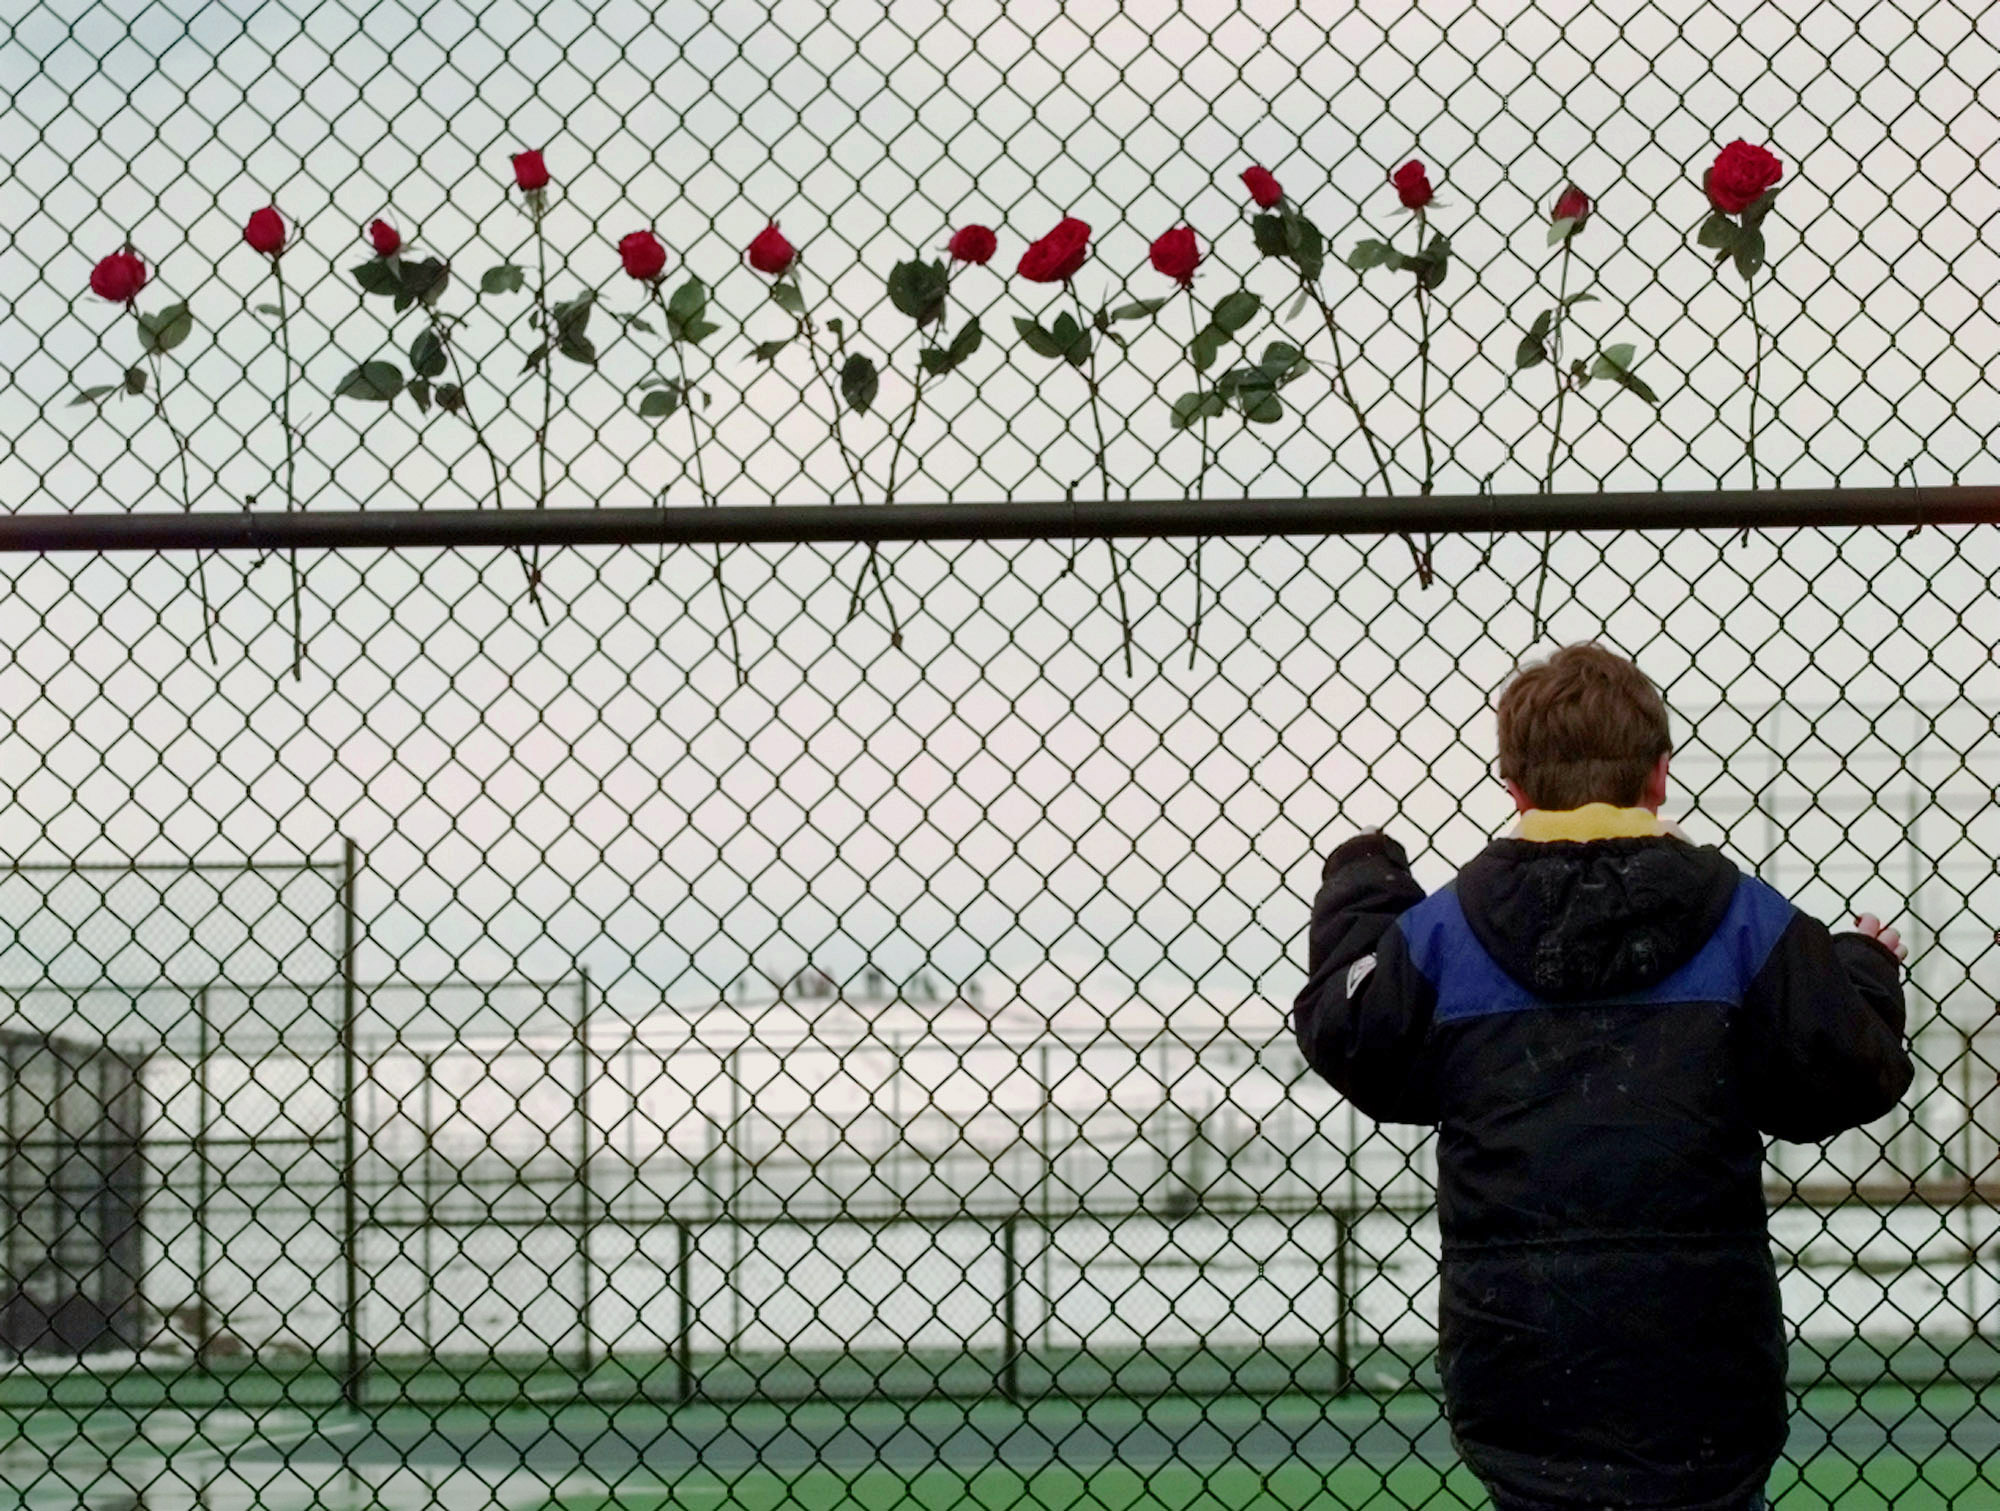 <p>A boy looks through the fence at the Columbine High School tennis courts in Littleton, Colo., days after theApril 20, 1999 shootings.</p>